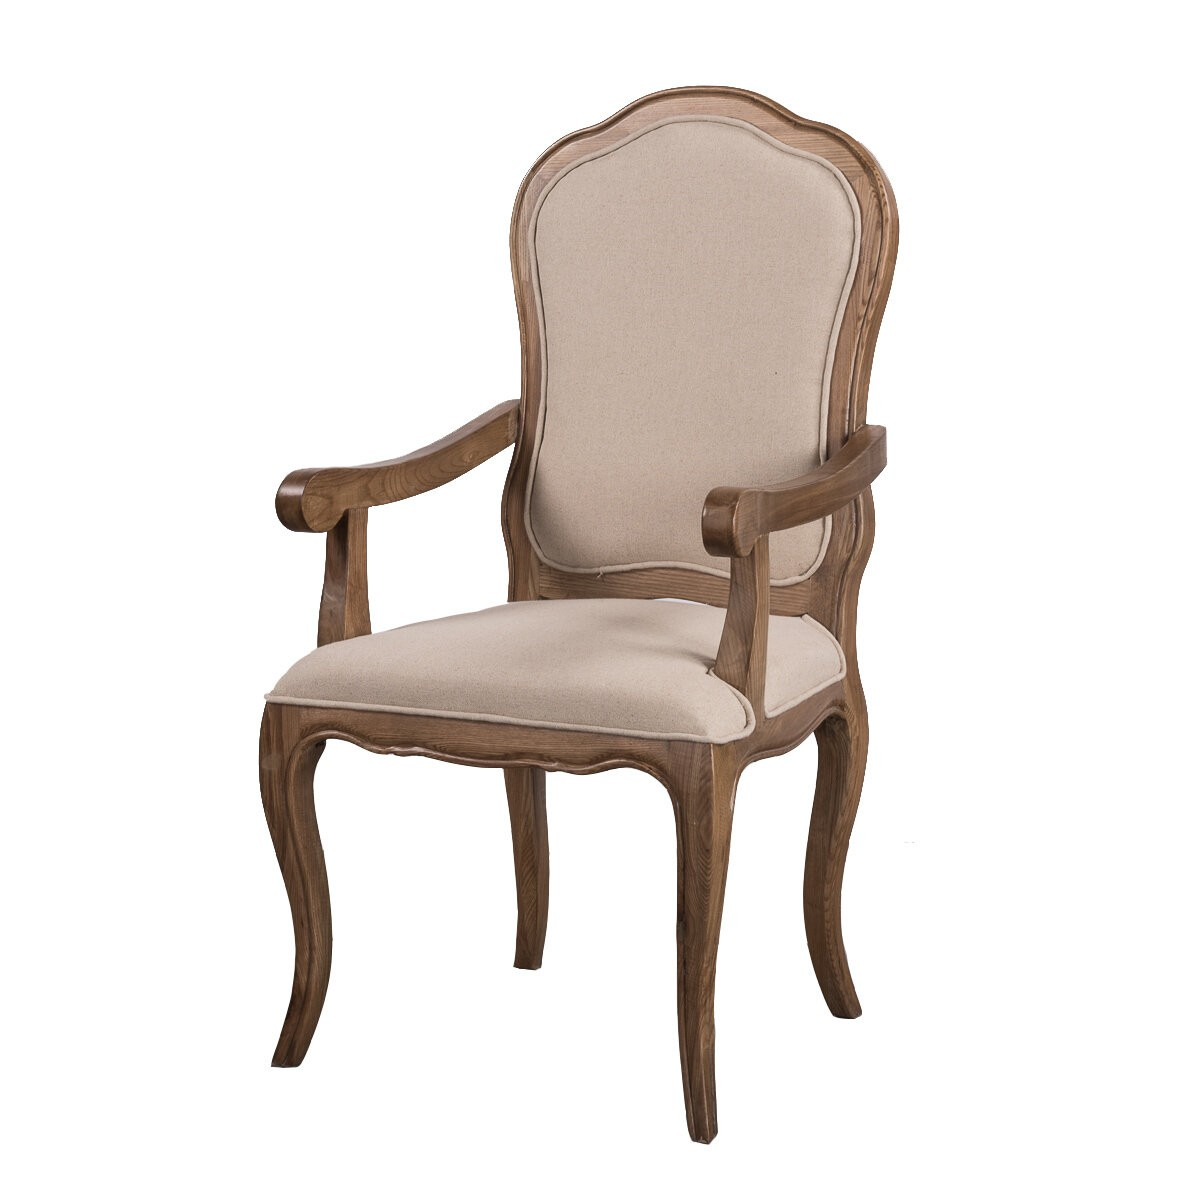 French Provincial Furniture Natural Oak Dining Arm Chair  : 00mxp2995 from www.wholesalesdirect.com.au size 1200 x 1200 jpeg 116kB